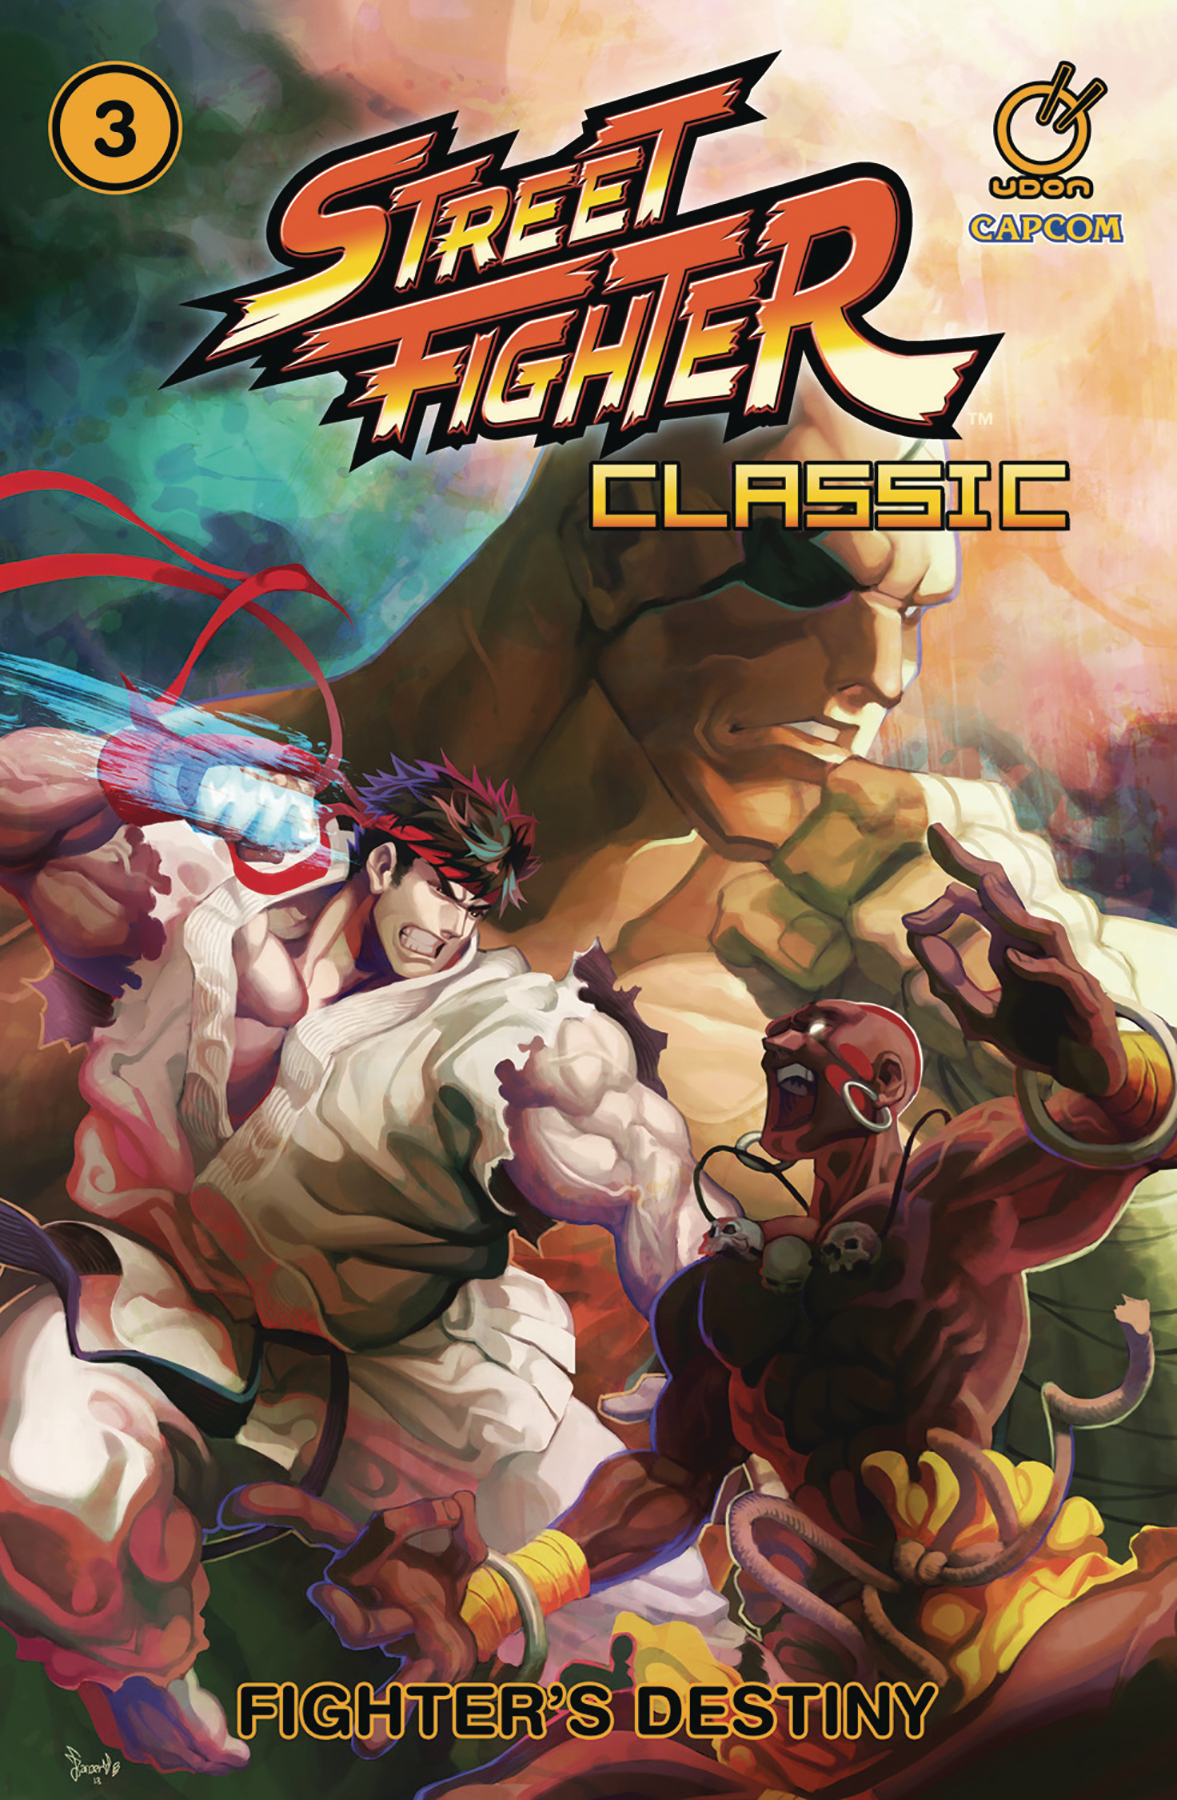 STREET FIGHTER CLASSIC TP VOL 03 FIGHTERS DESTINY